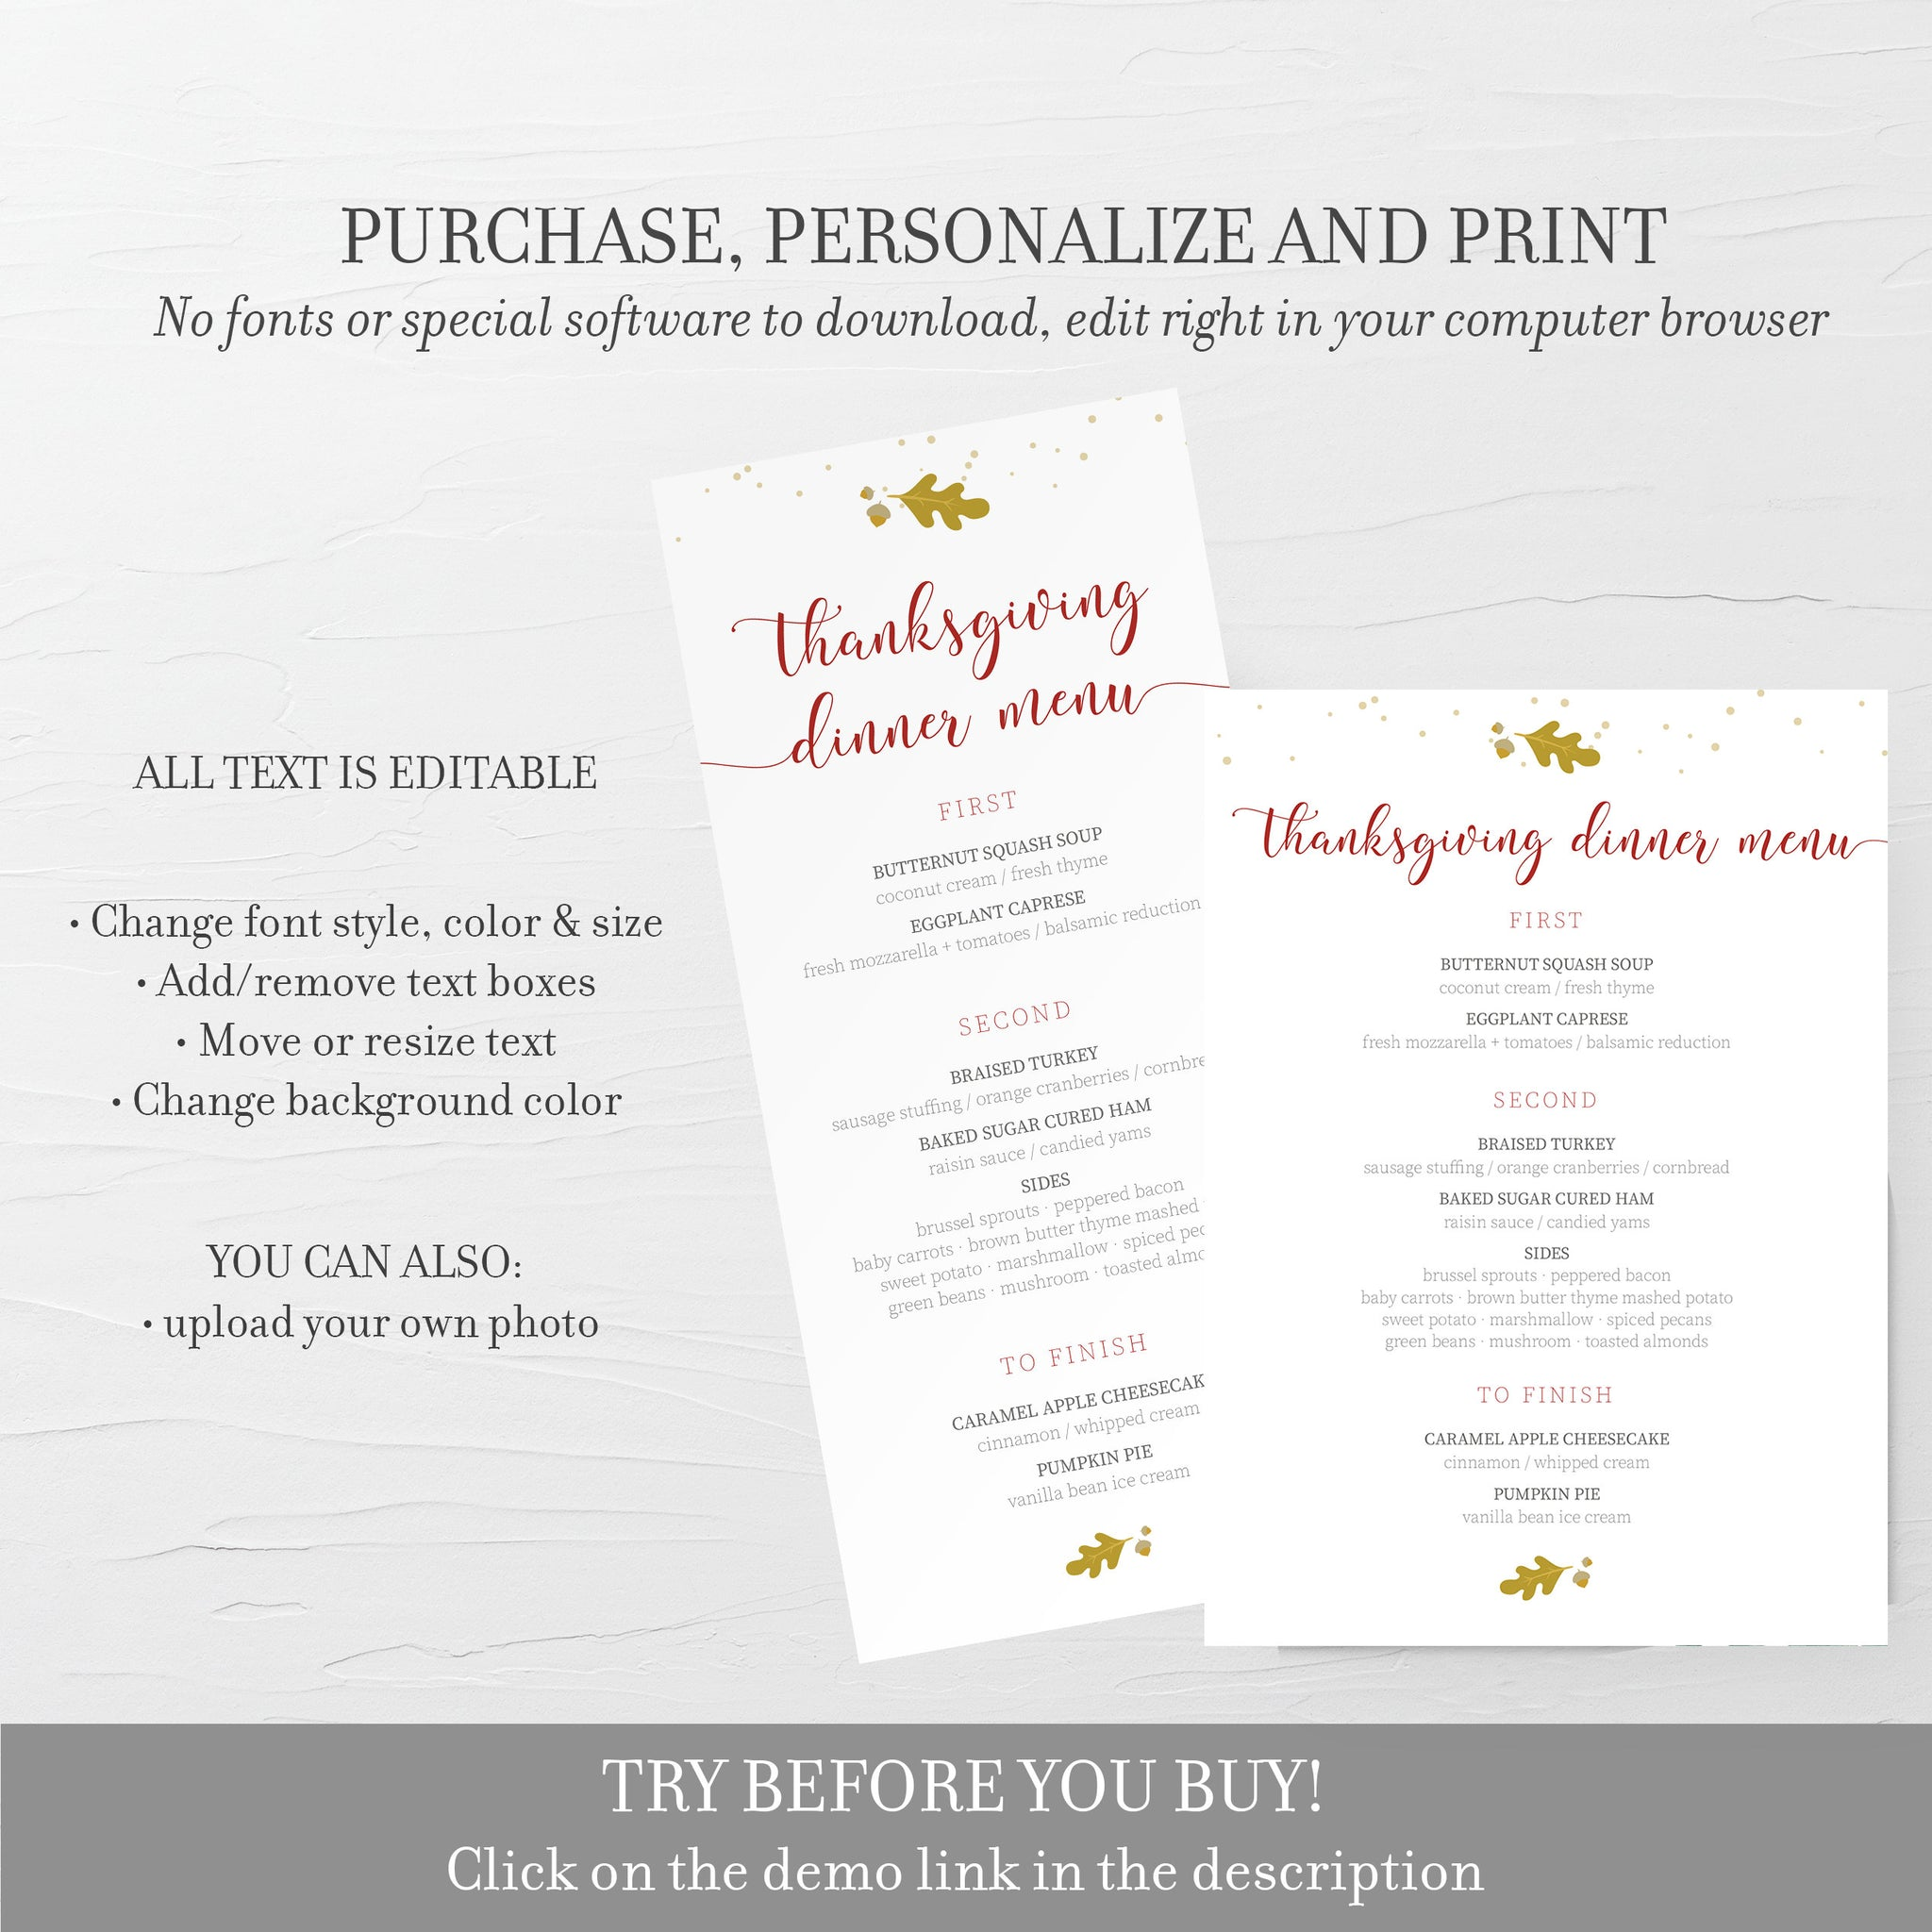 Thanksgiving Menu Template, Thanksgiving Table Decor, Thanksgiving Dinner Menu Printable, Editable DIGITAL DOWNLOAD - FL100 - @PlumPolkaDot